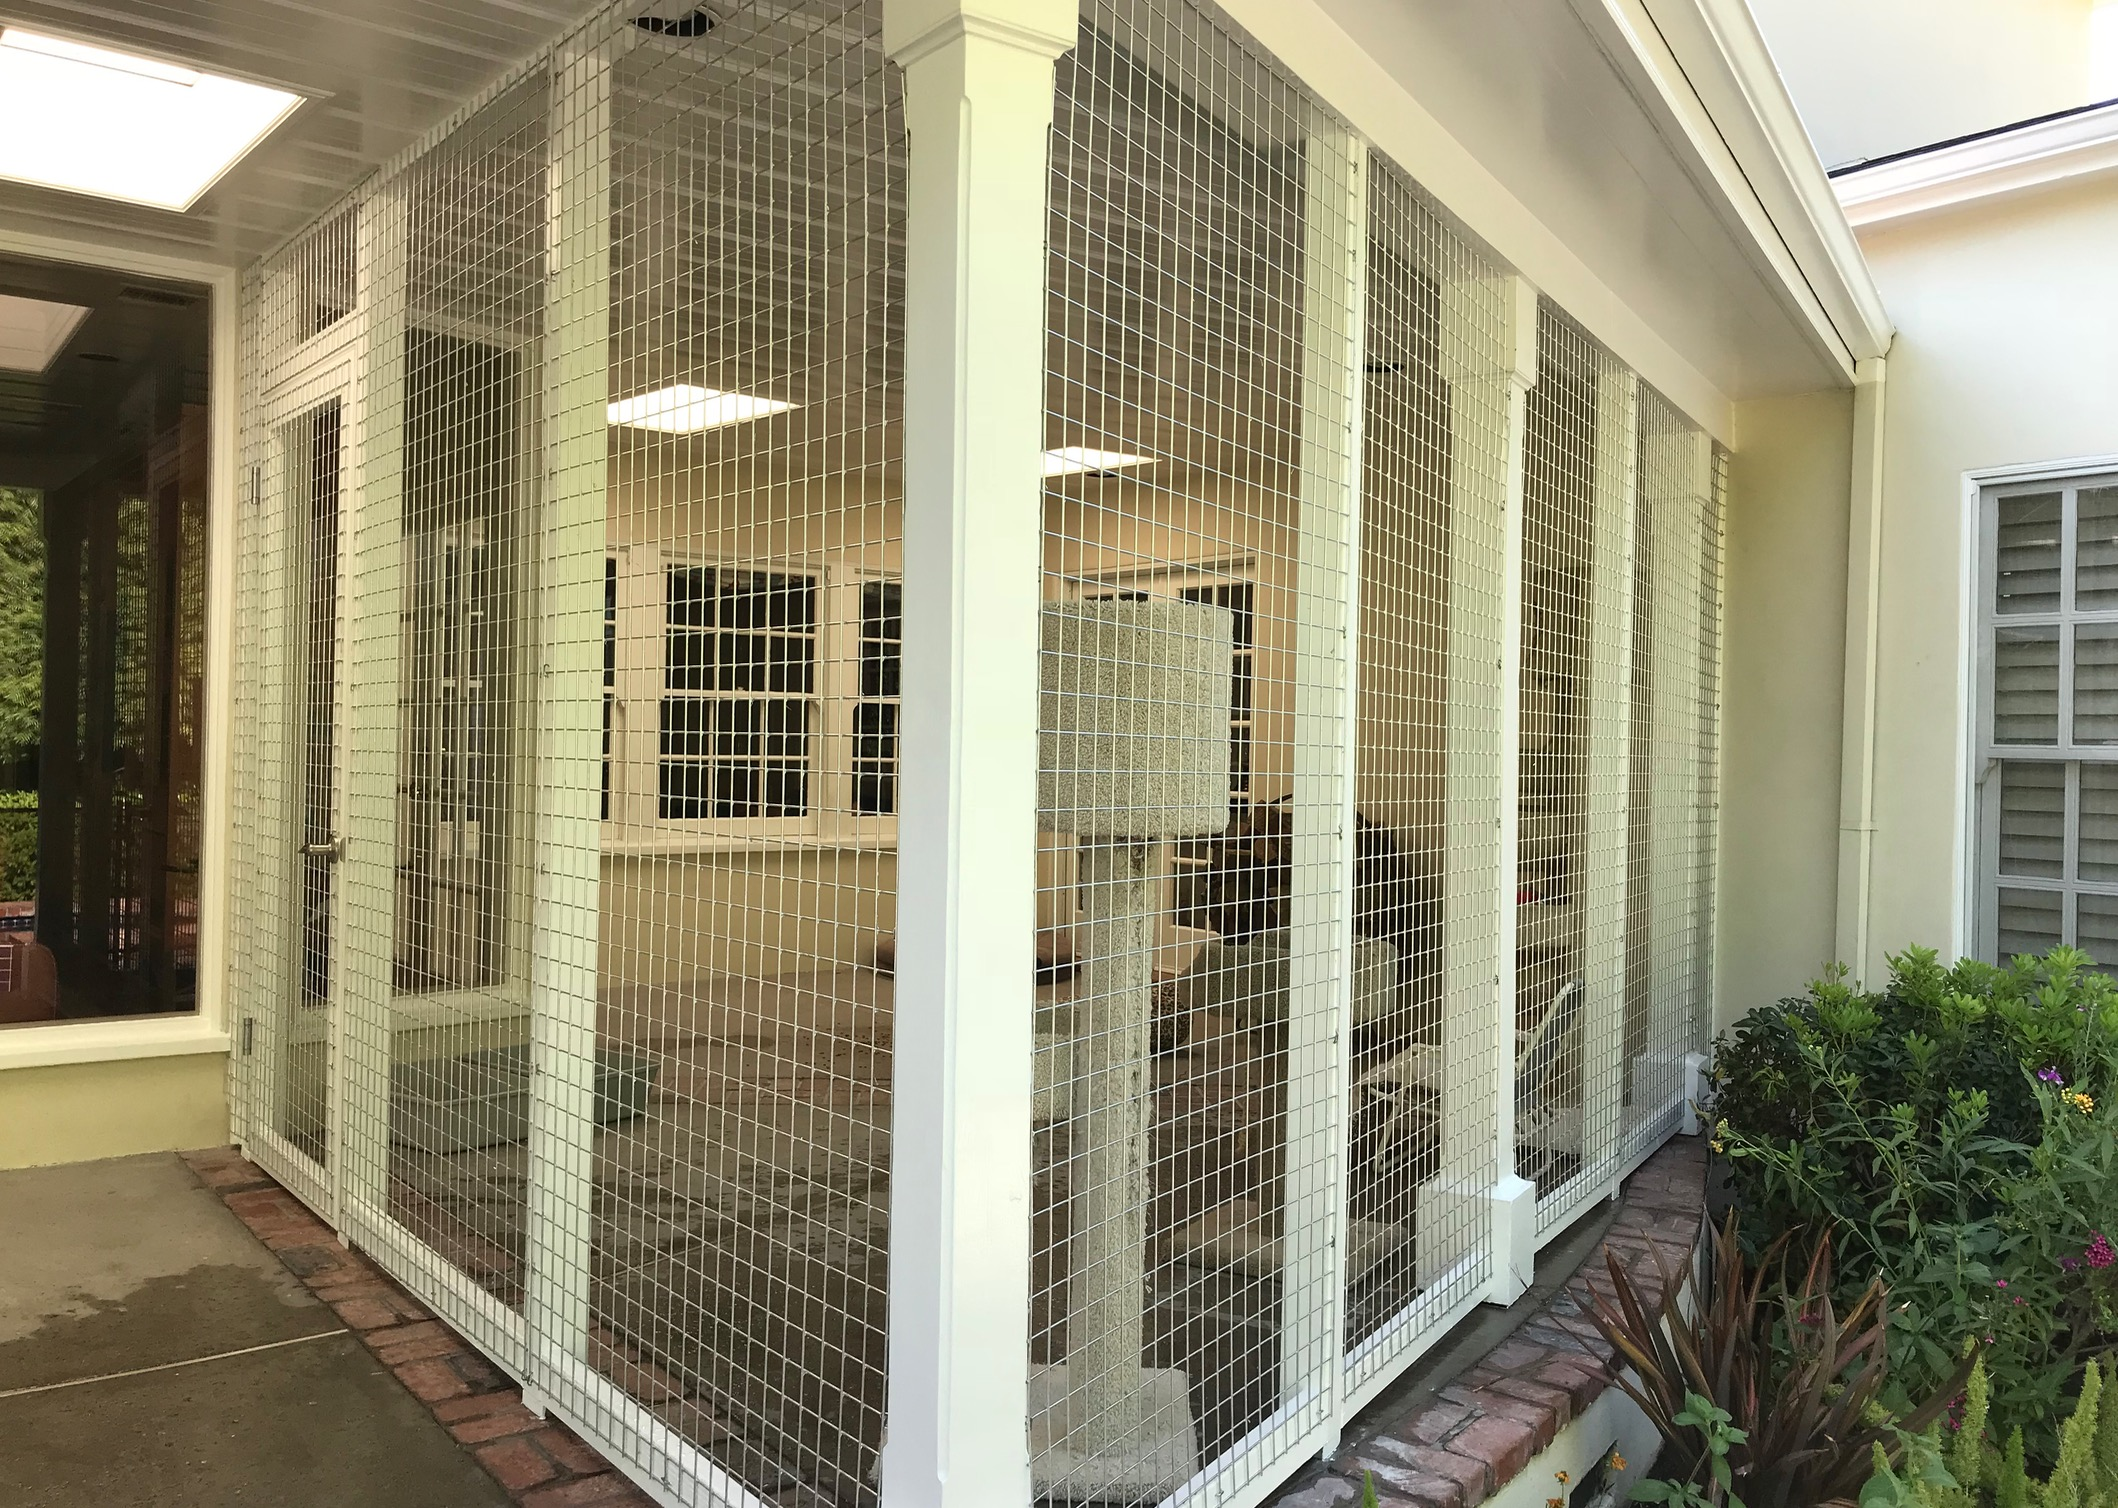 Toluca Lake Catio Left and Right Side